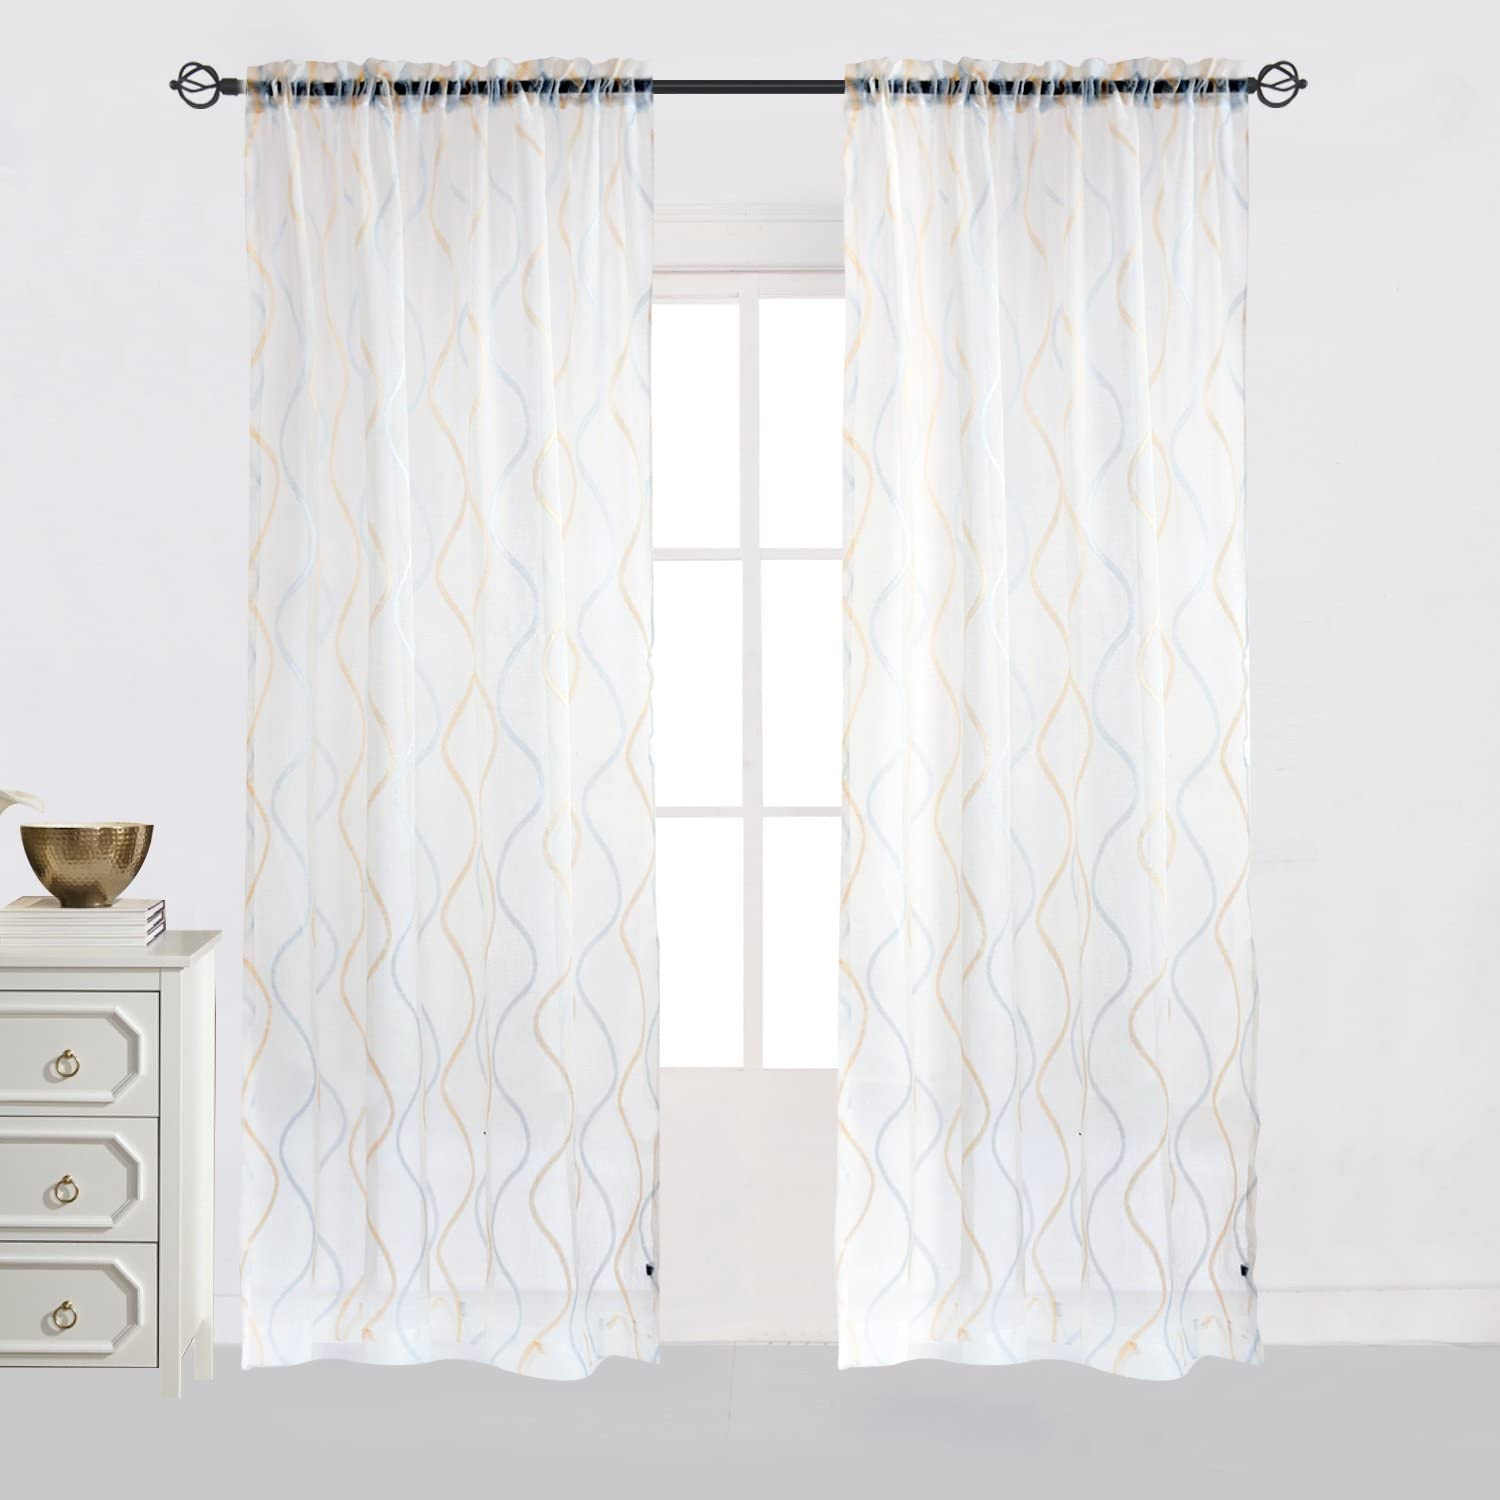 Cheery Home Wave Sheer Curtains Voile Panels Drapes Rod Pocket for Living Room,52 Inch by 63 Inch,Blue and Gold